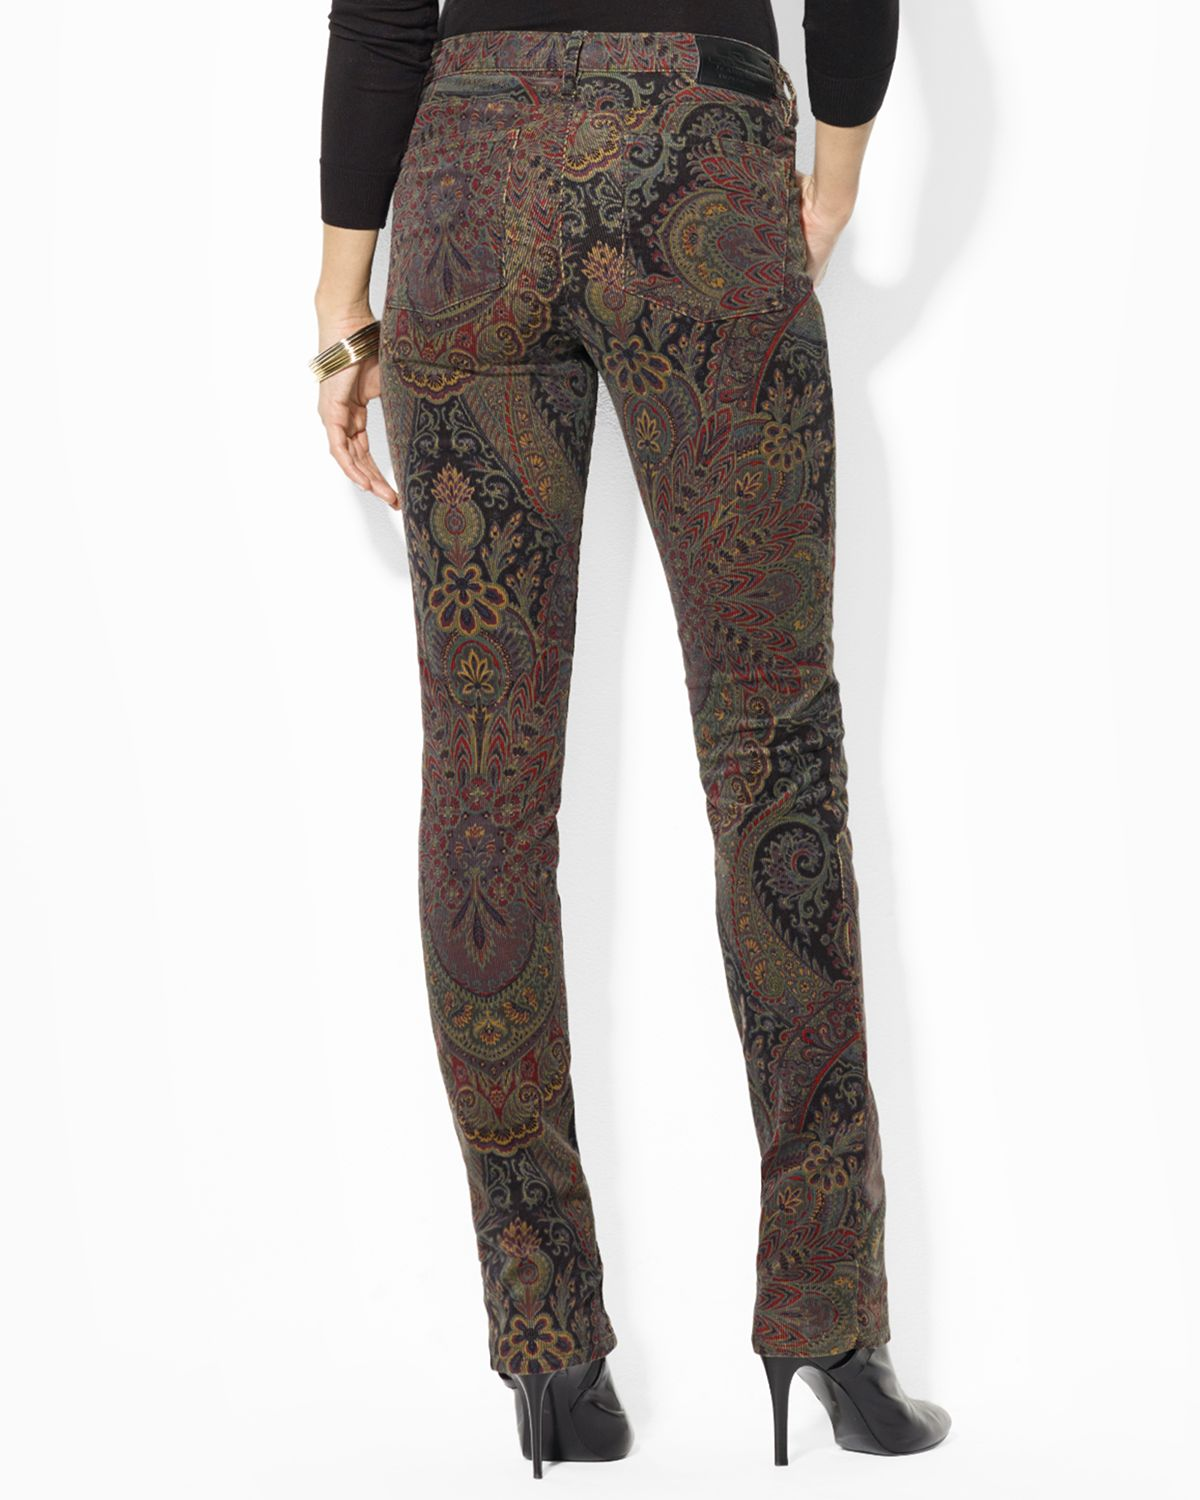 Lauren by ralph lauren Paisley Print Corduroy Pants in Brown | Lyst